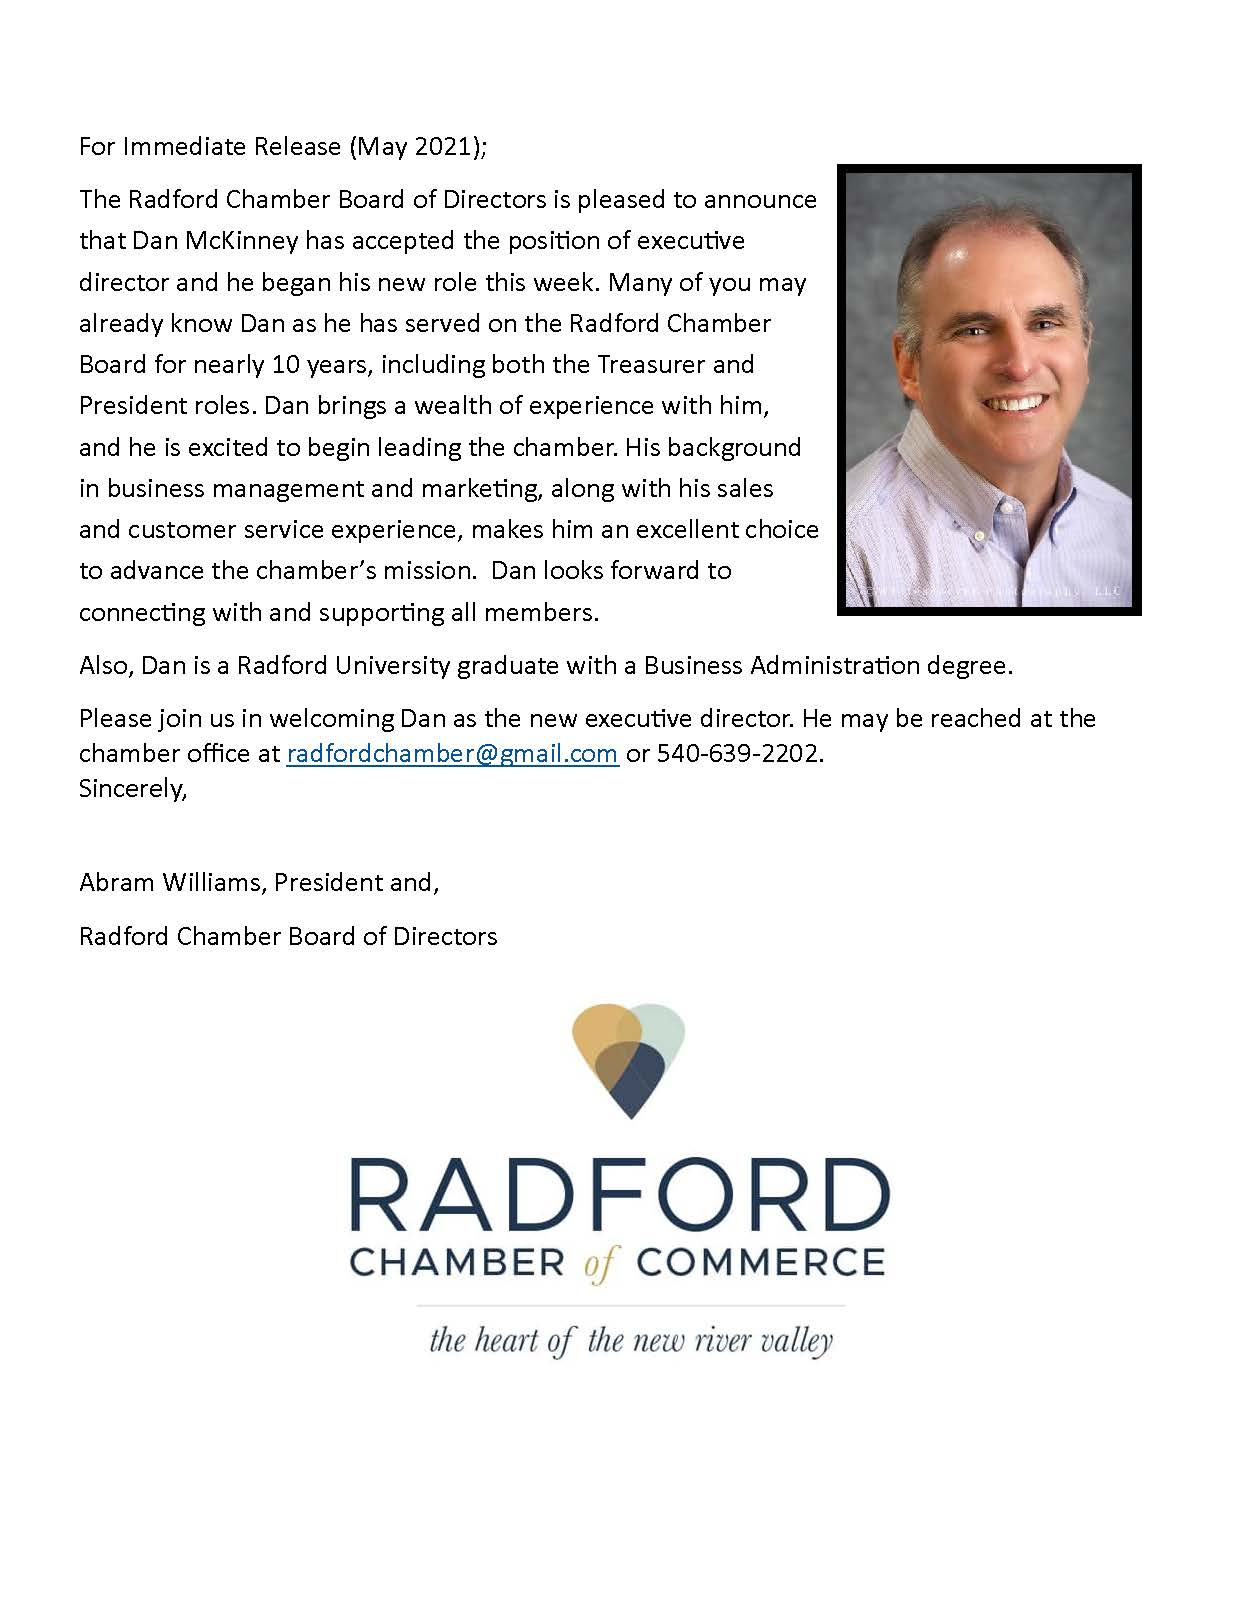 McKinney named Executive Director of Radford Chamber of Commerce